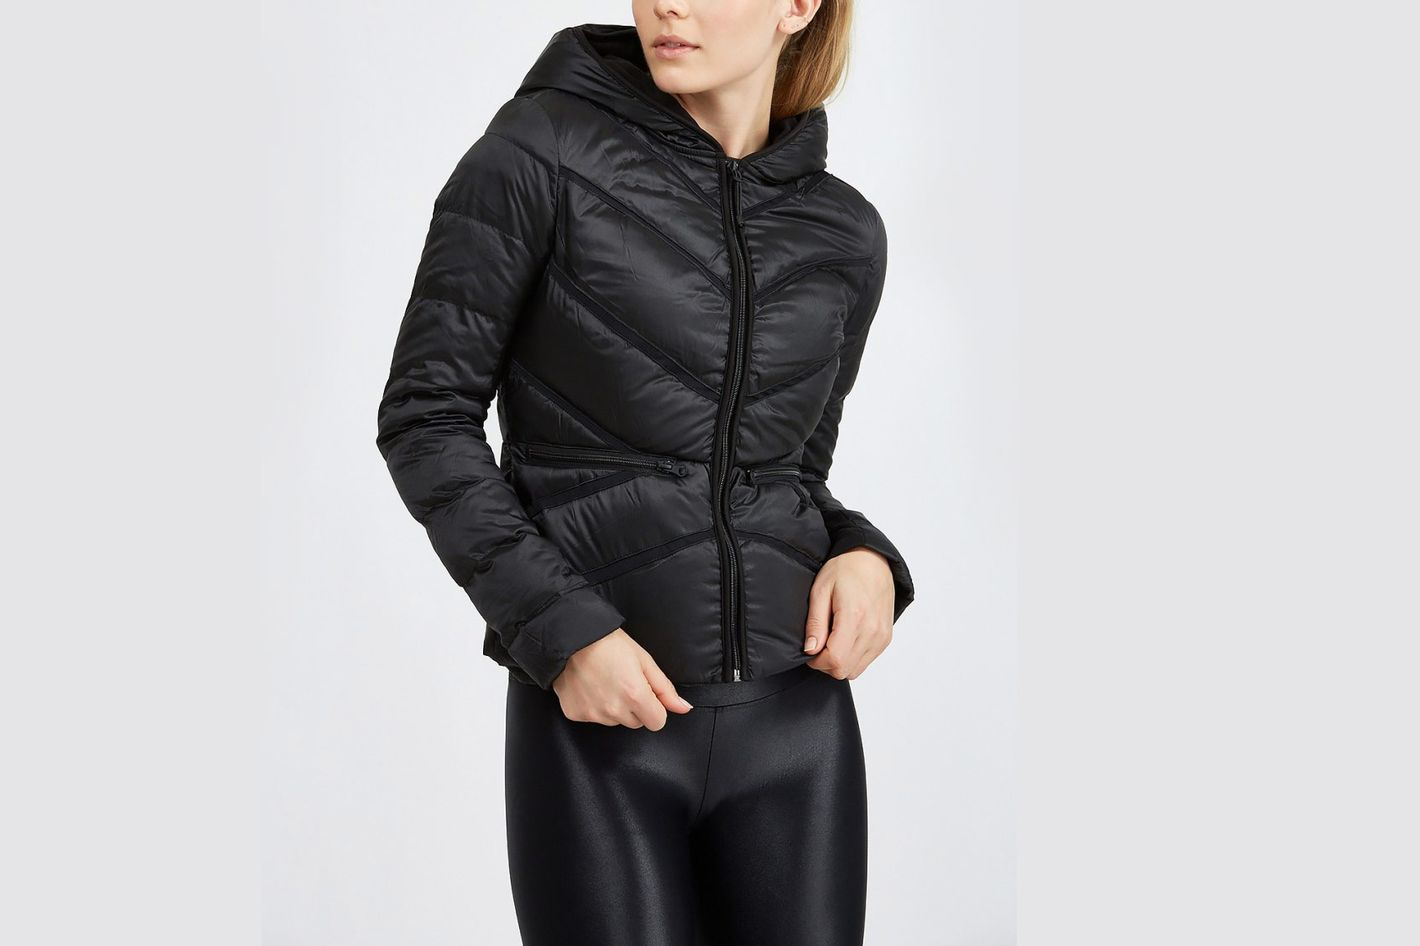 Blanc Noir Zip Front Hooded Jacket